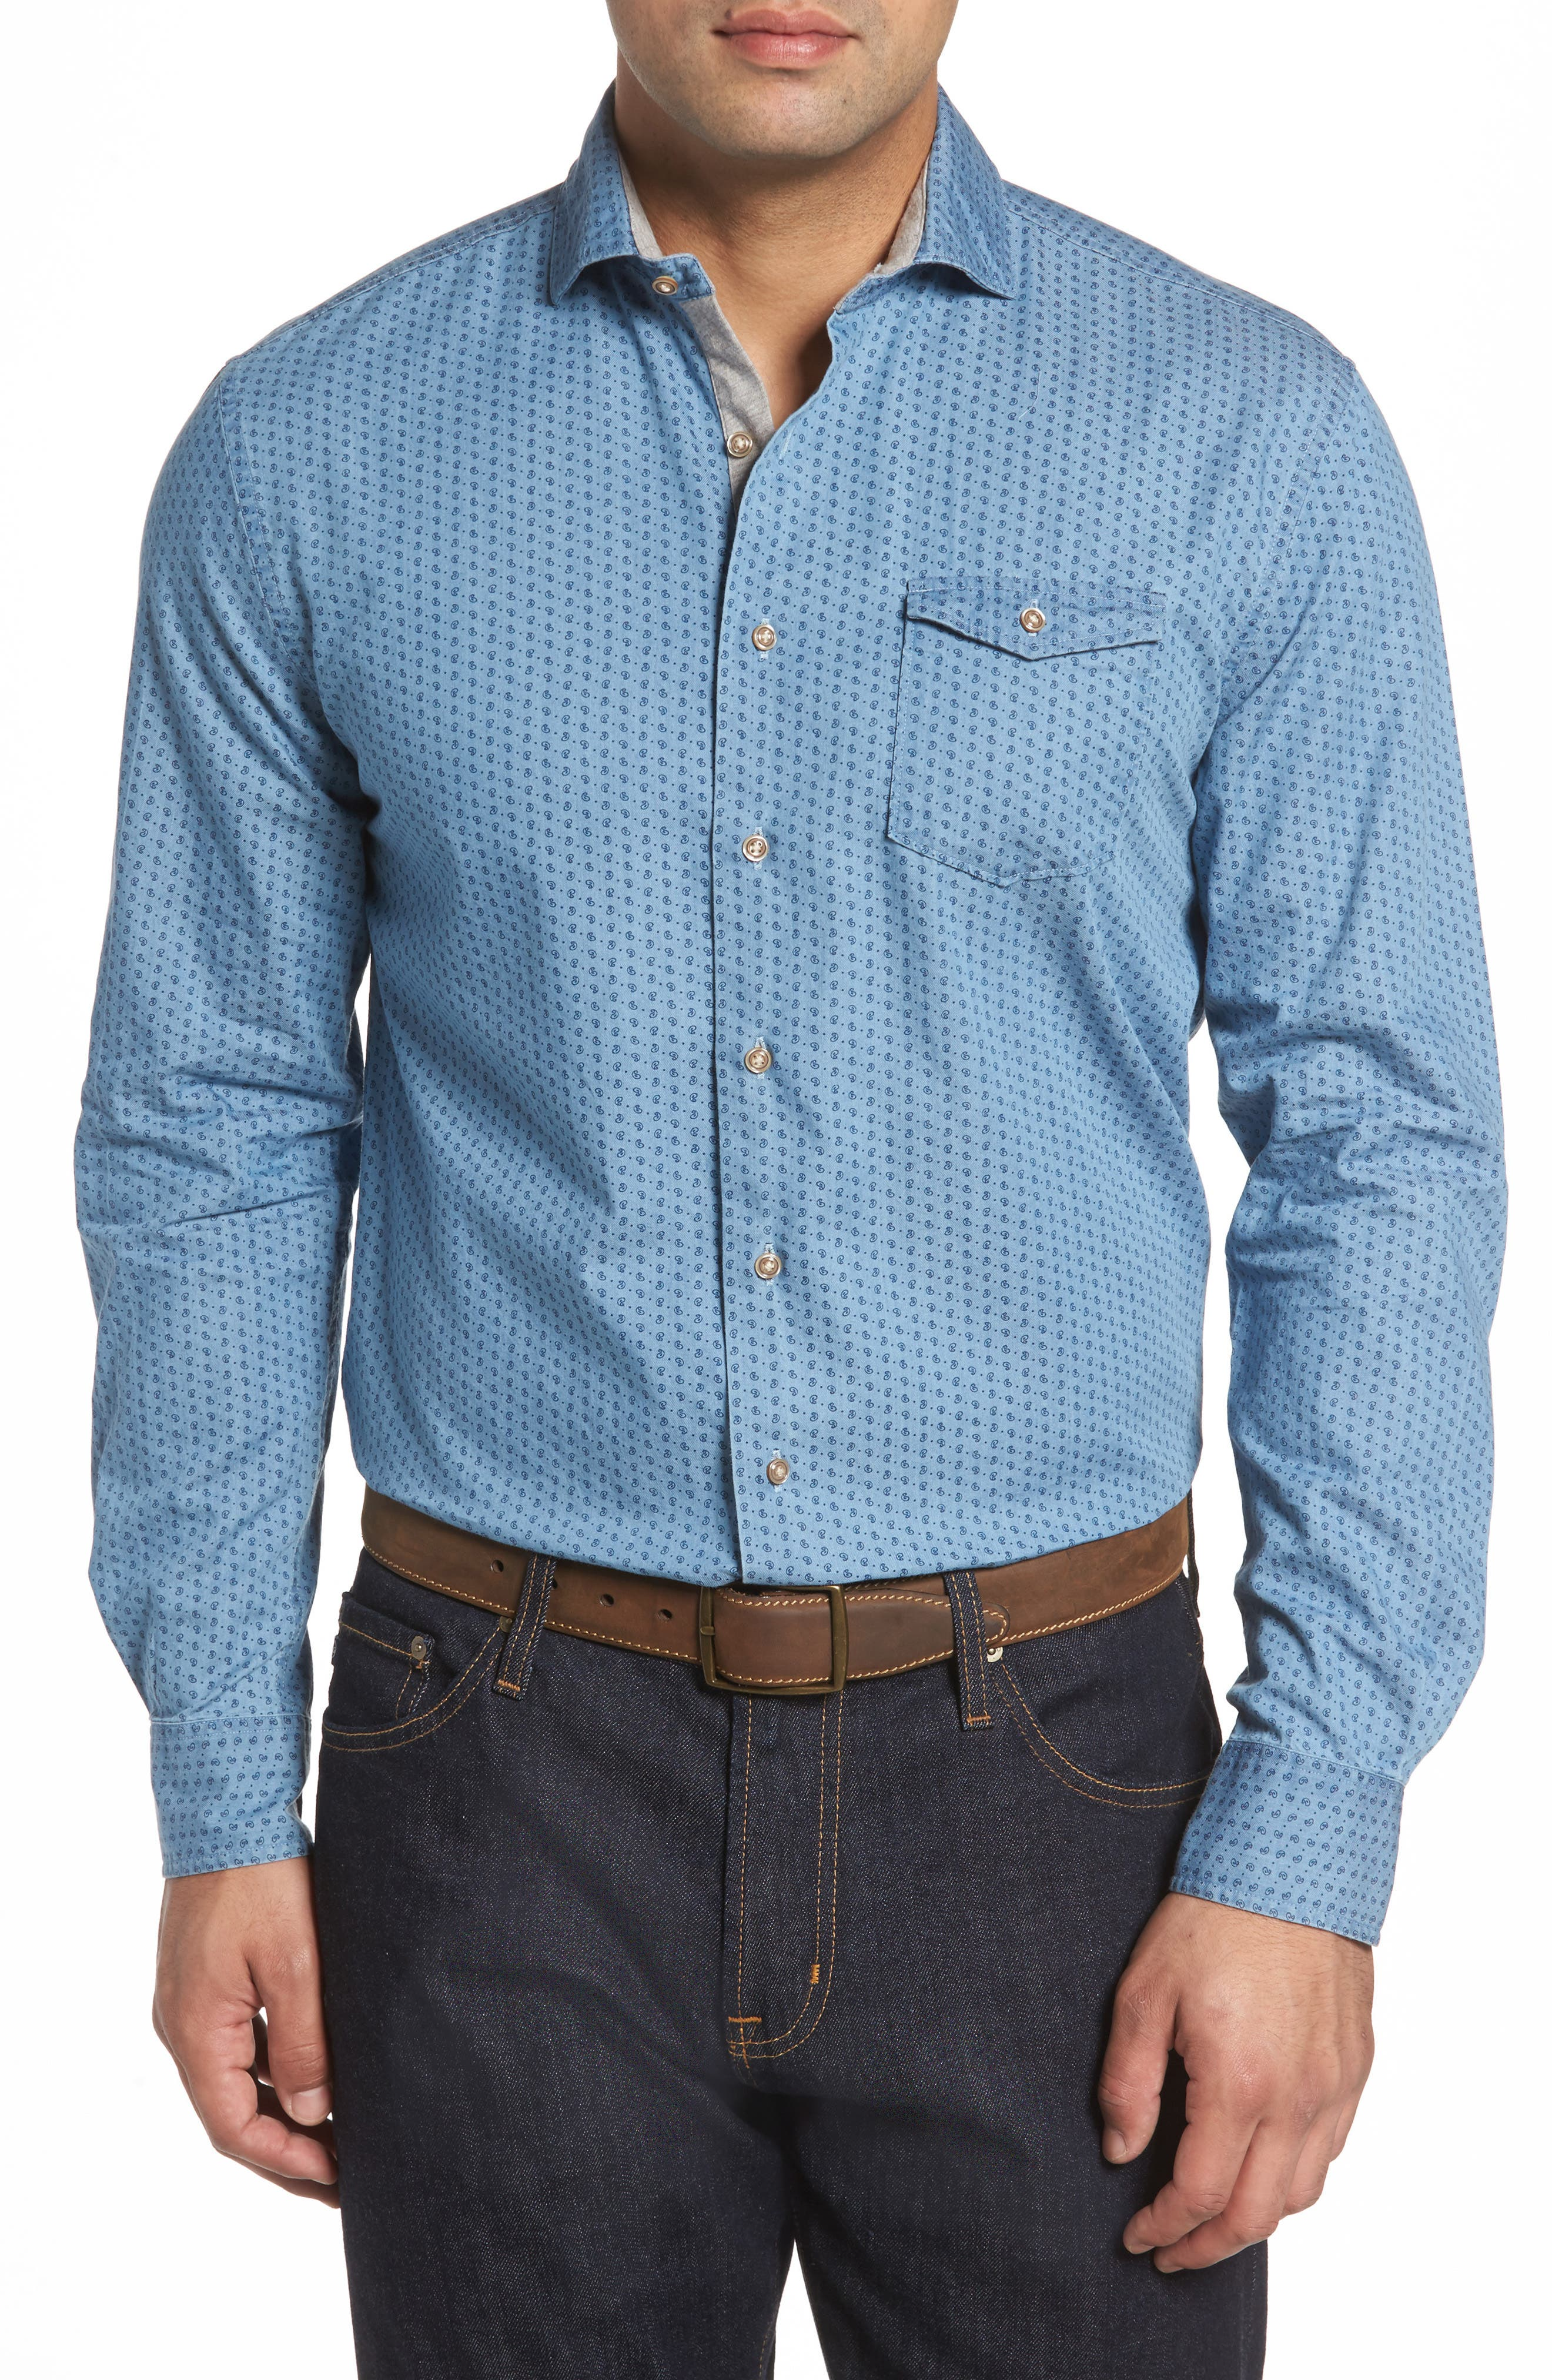 Alternate Image 1 Selected - johnnie-O Capetown Classic Fit Paisley Sport Shirt